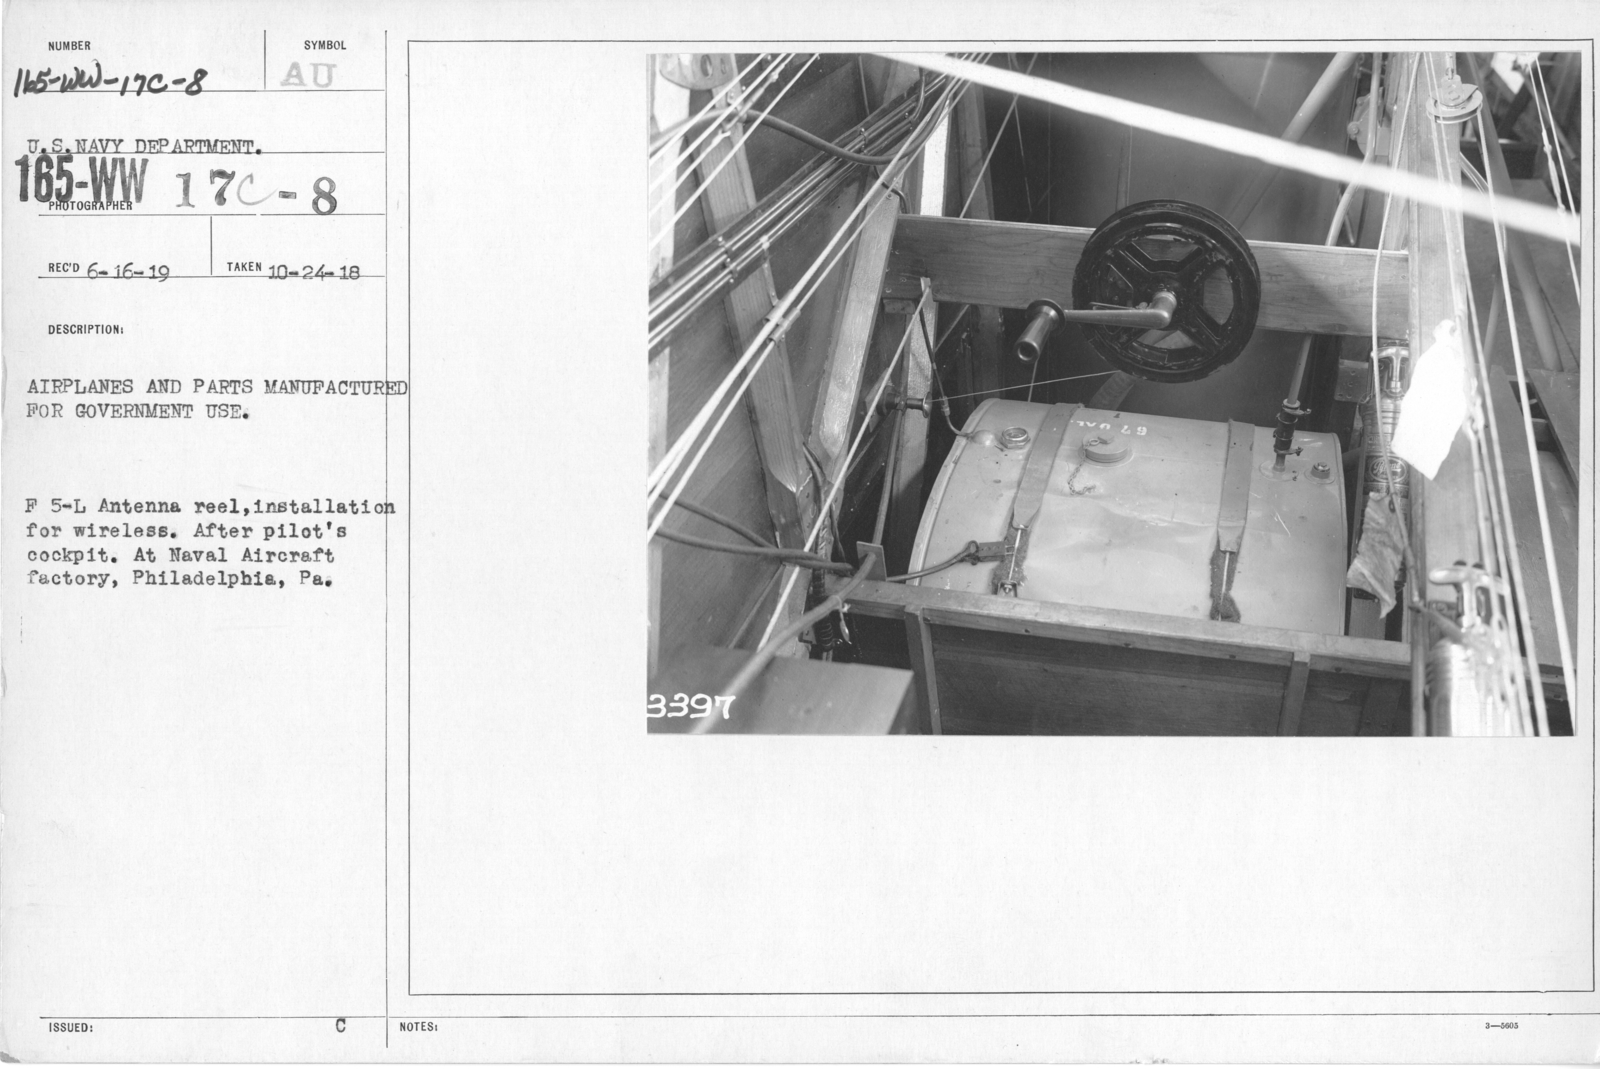 Airplanes - Radio Equipment - Airplanes and parts manufactured for government use. F 5-L Antenna reel, installation for wireless. After pilot's cockpit. At Naval Aircraft Factory, Philadelphia, PA. U.S. Navy Department